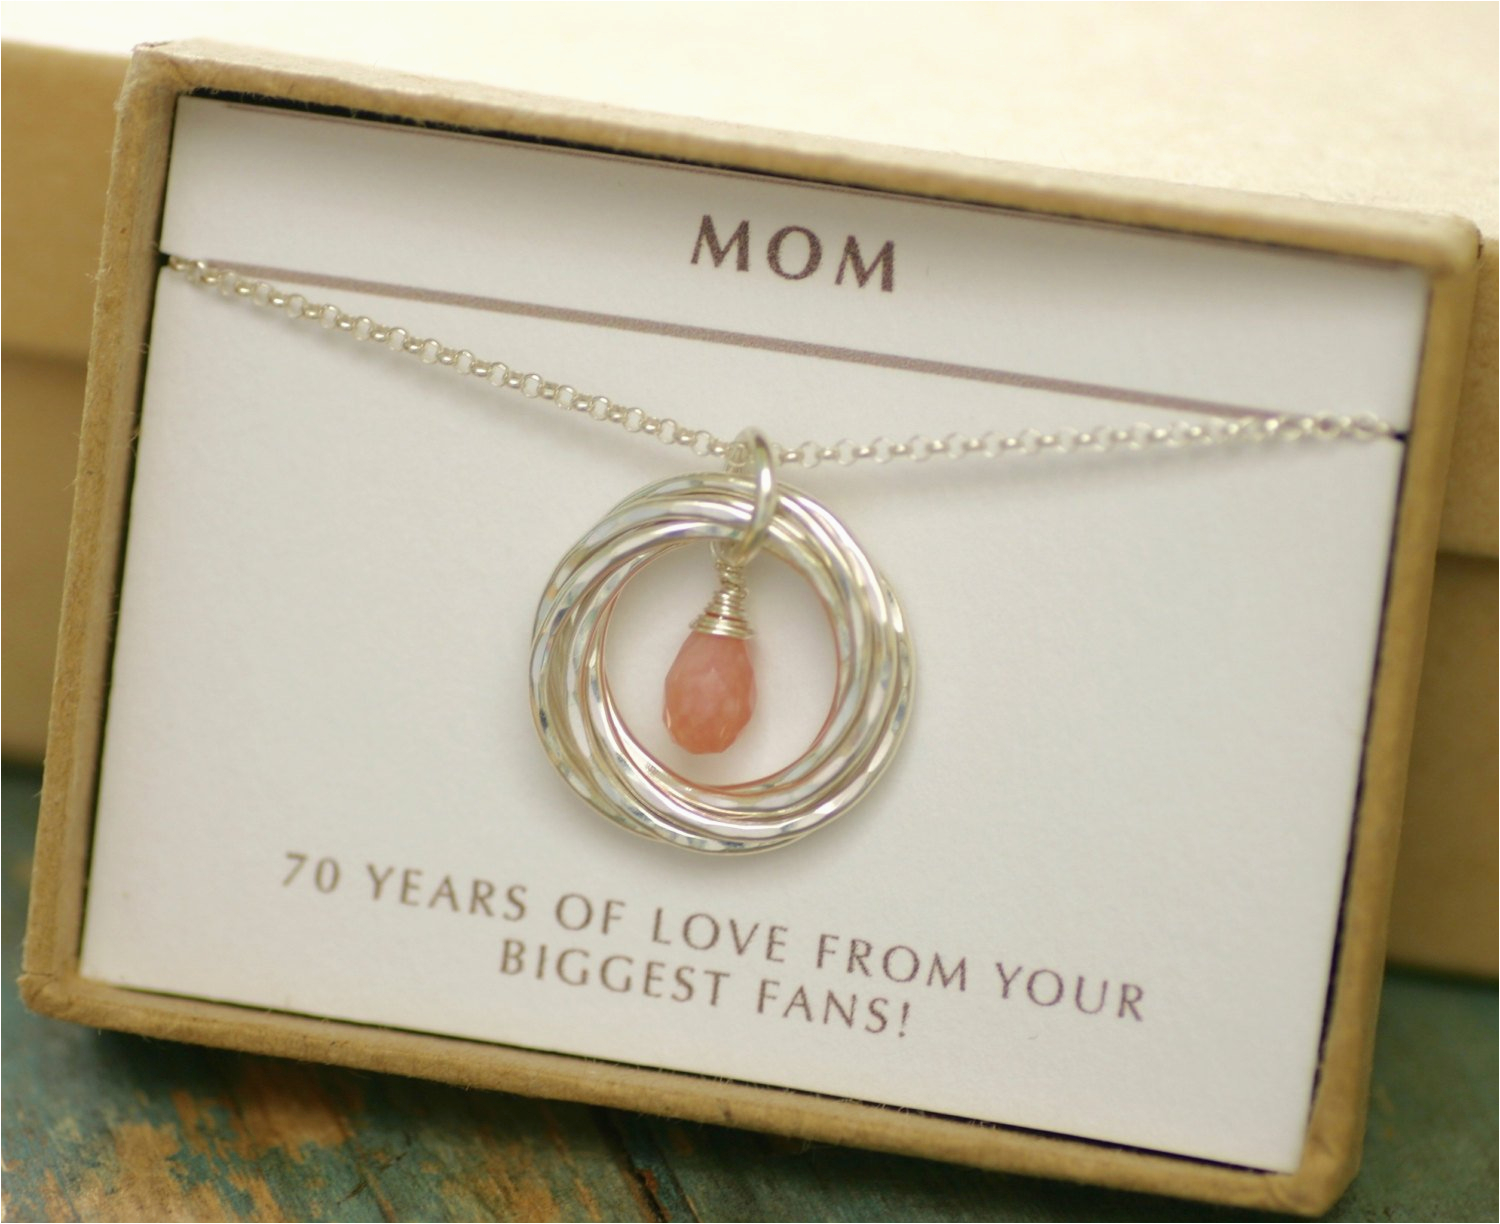 Gifts For Her 70th Birthday Gift Idea Pink Opal Necklace Grandma